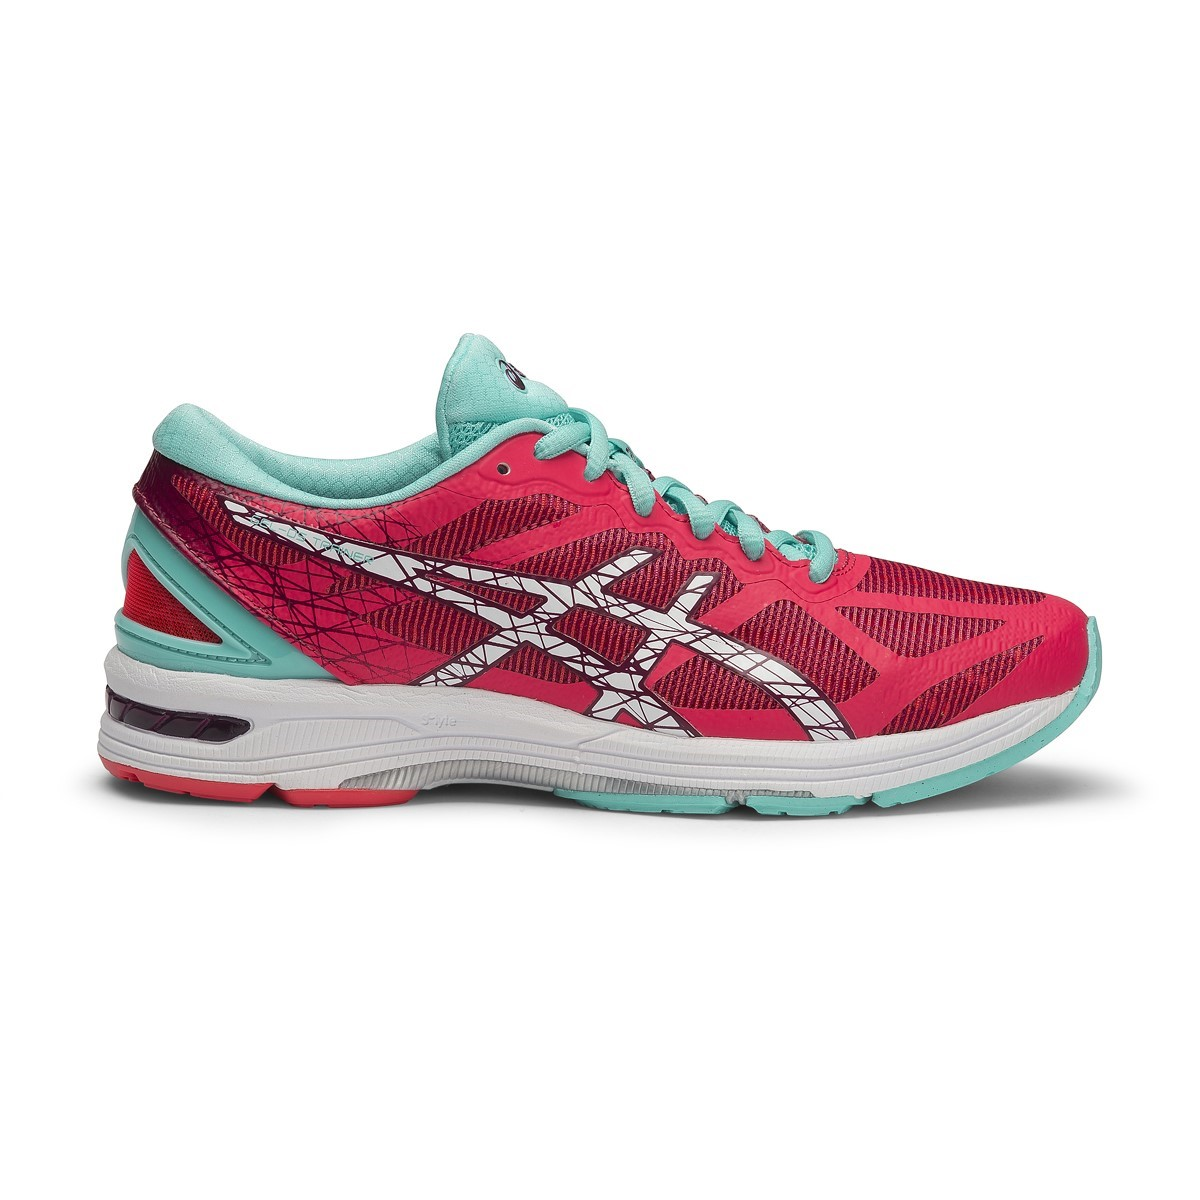 official photos 2d5ec de1c9 Asics Gel DS Trainer 21 - Womens Running Shoes